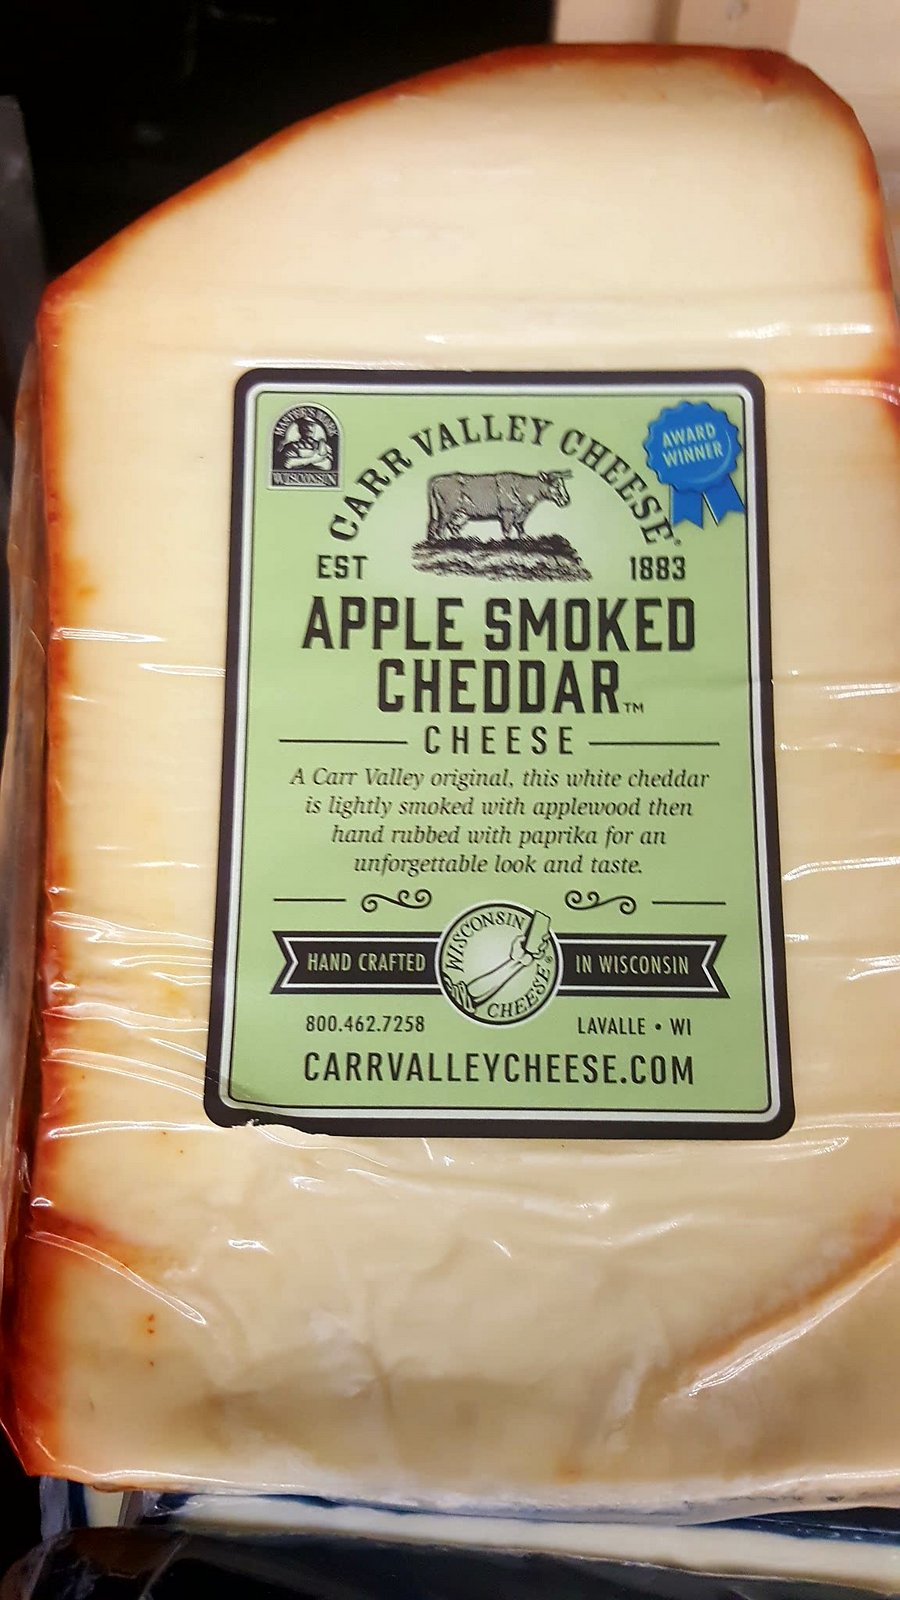 Oct 17 Carr Valley Apple Smoked Cheddar cheese.jpg